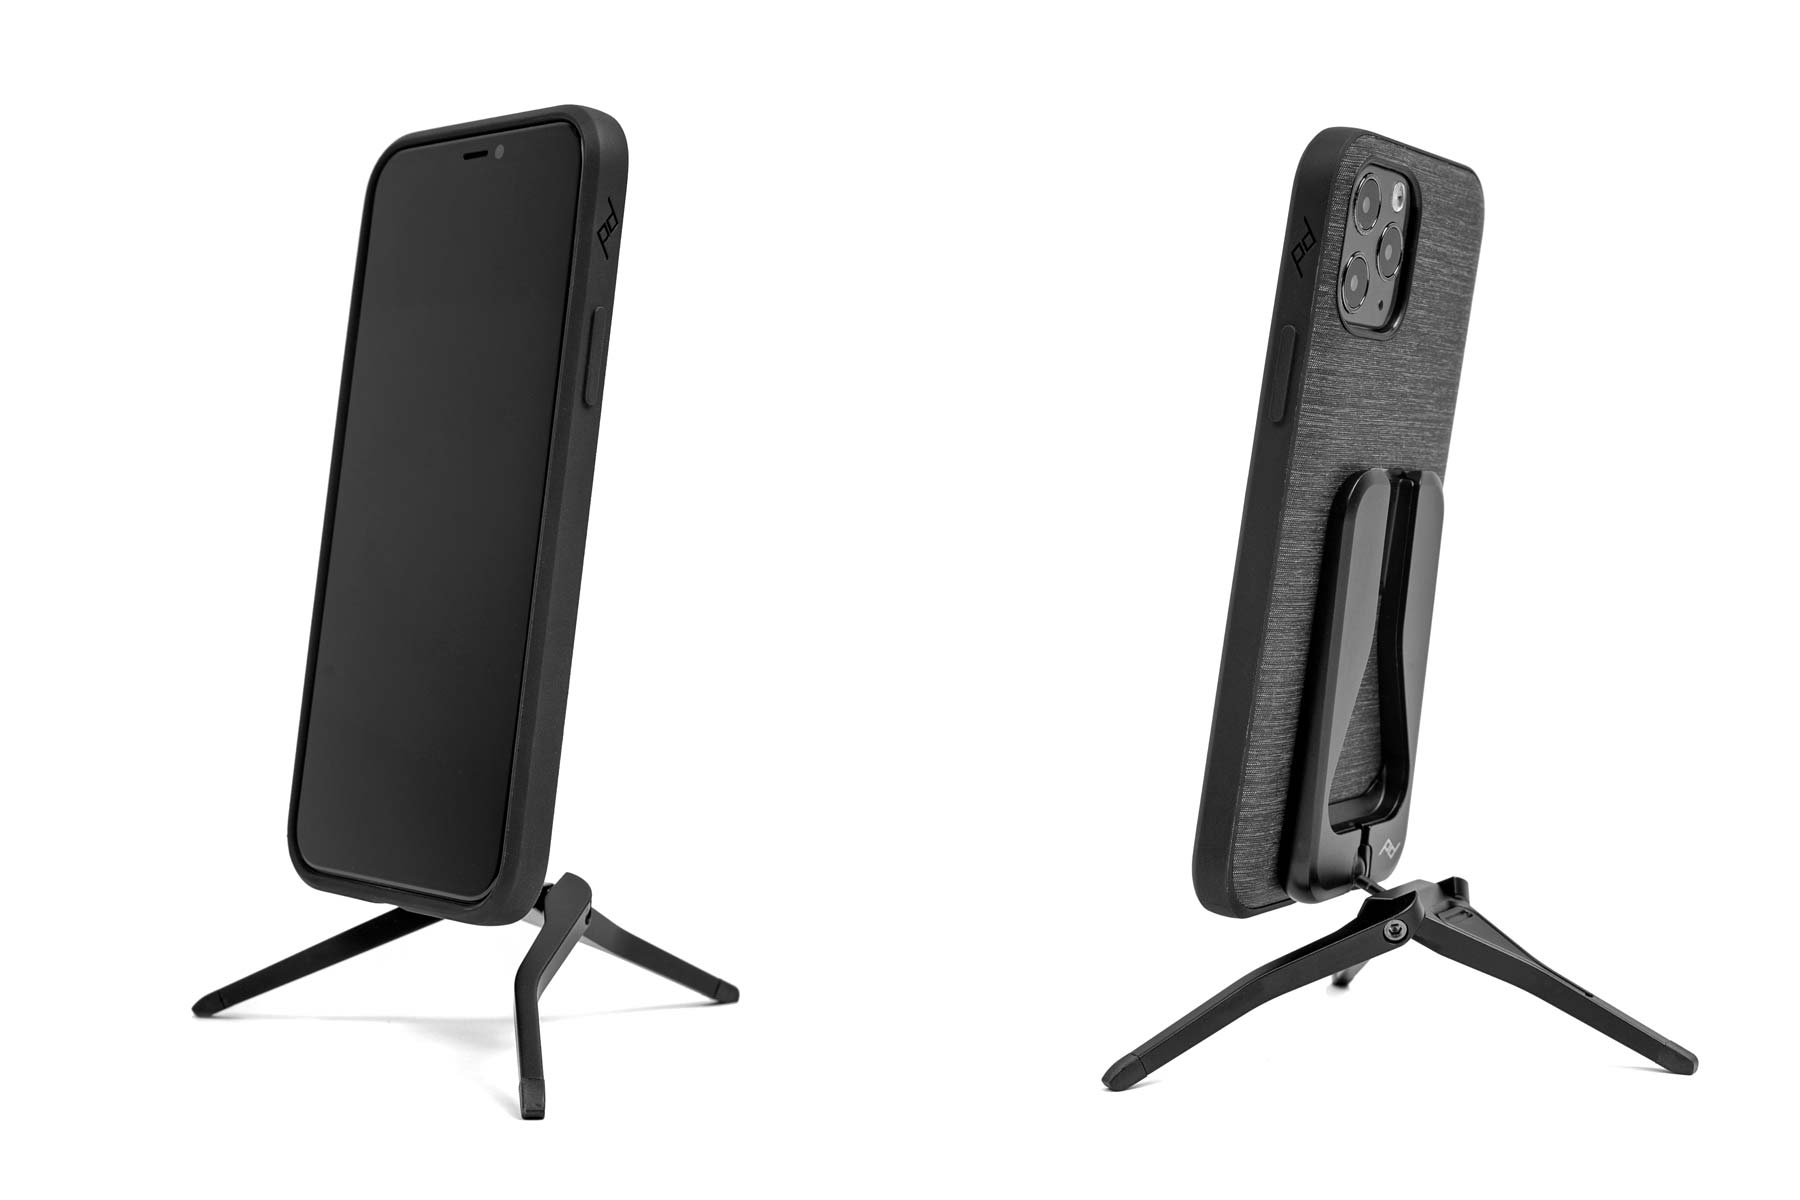 Mobile by Peak Design phone case and mounts, magnetic and secure locking mobile phone bike mounts everyday case charging adapters,Mobile Tripod